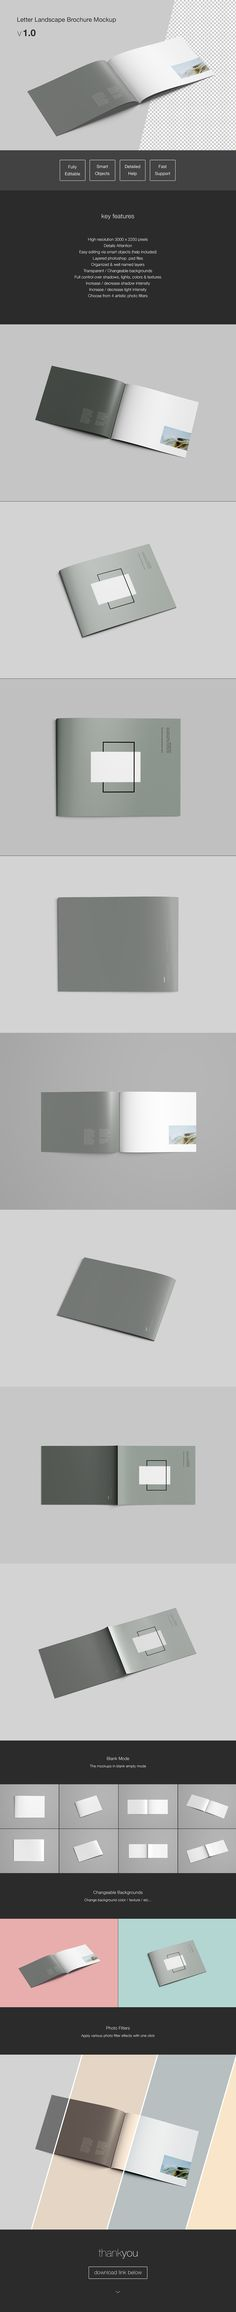 A Landscape Brochure Mockup In Photoshop Psd Format Available